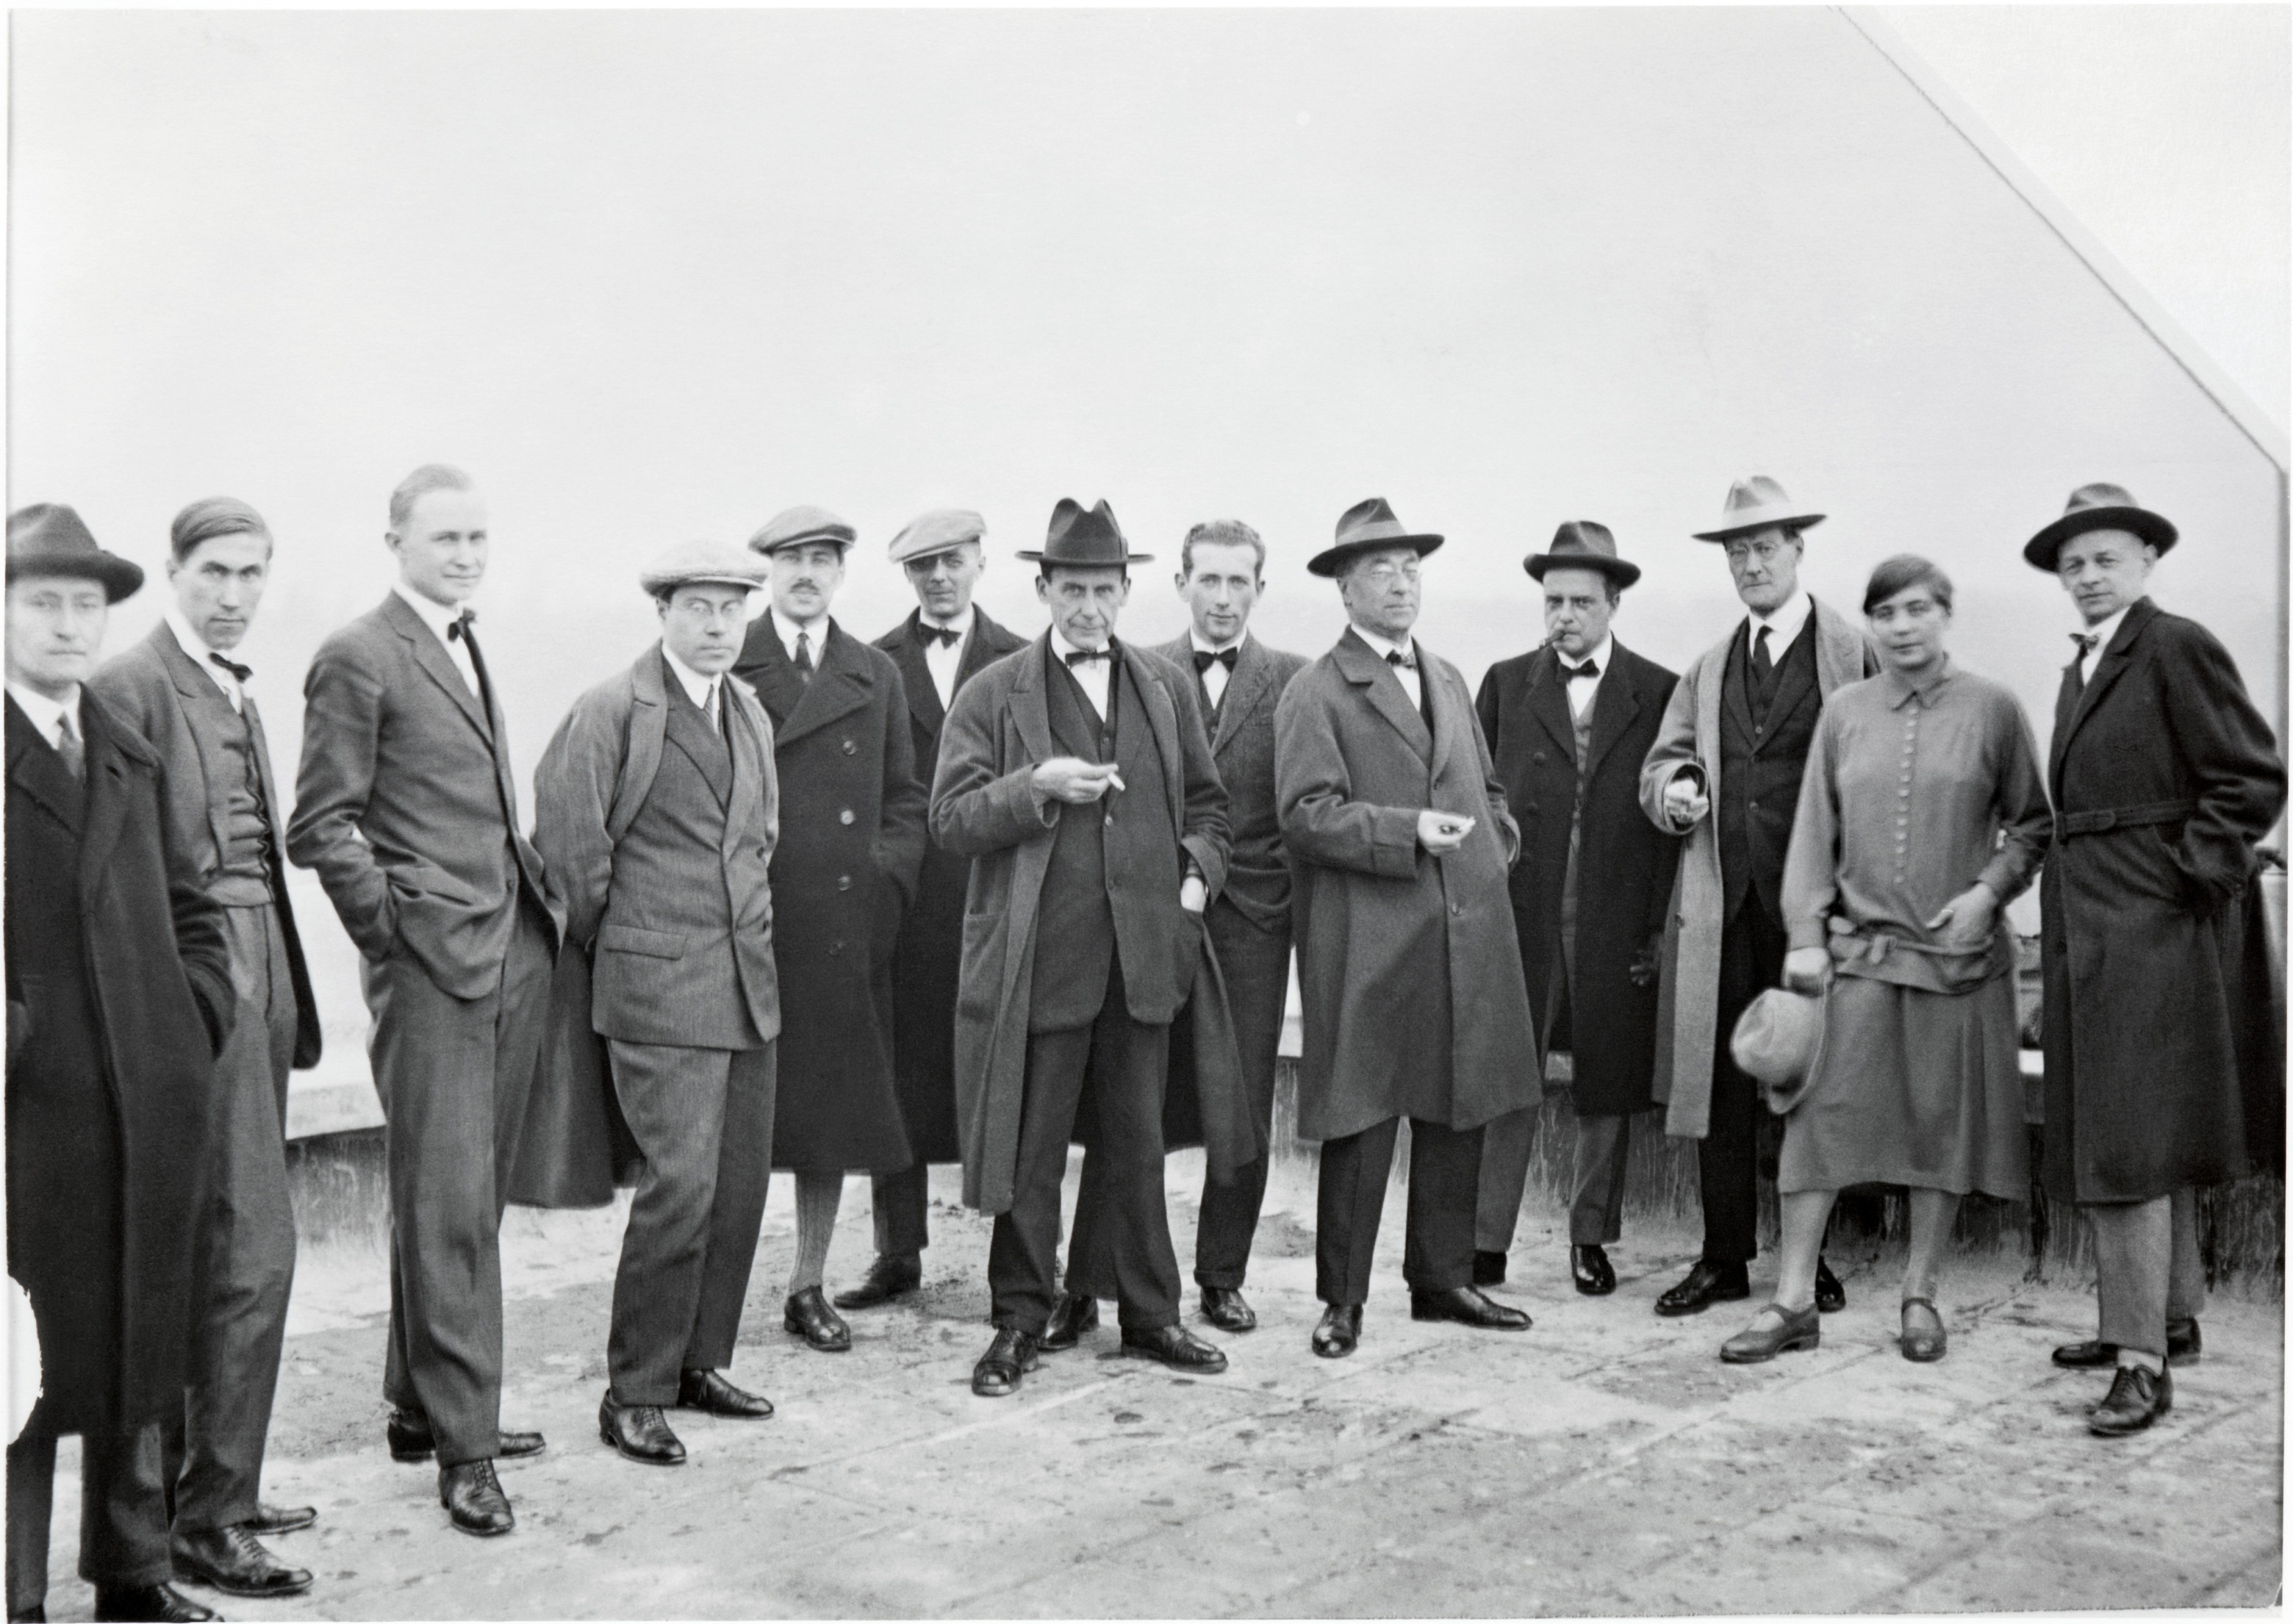 Bauhaus - Walter Gropius and masters on the roof